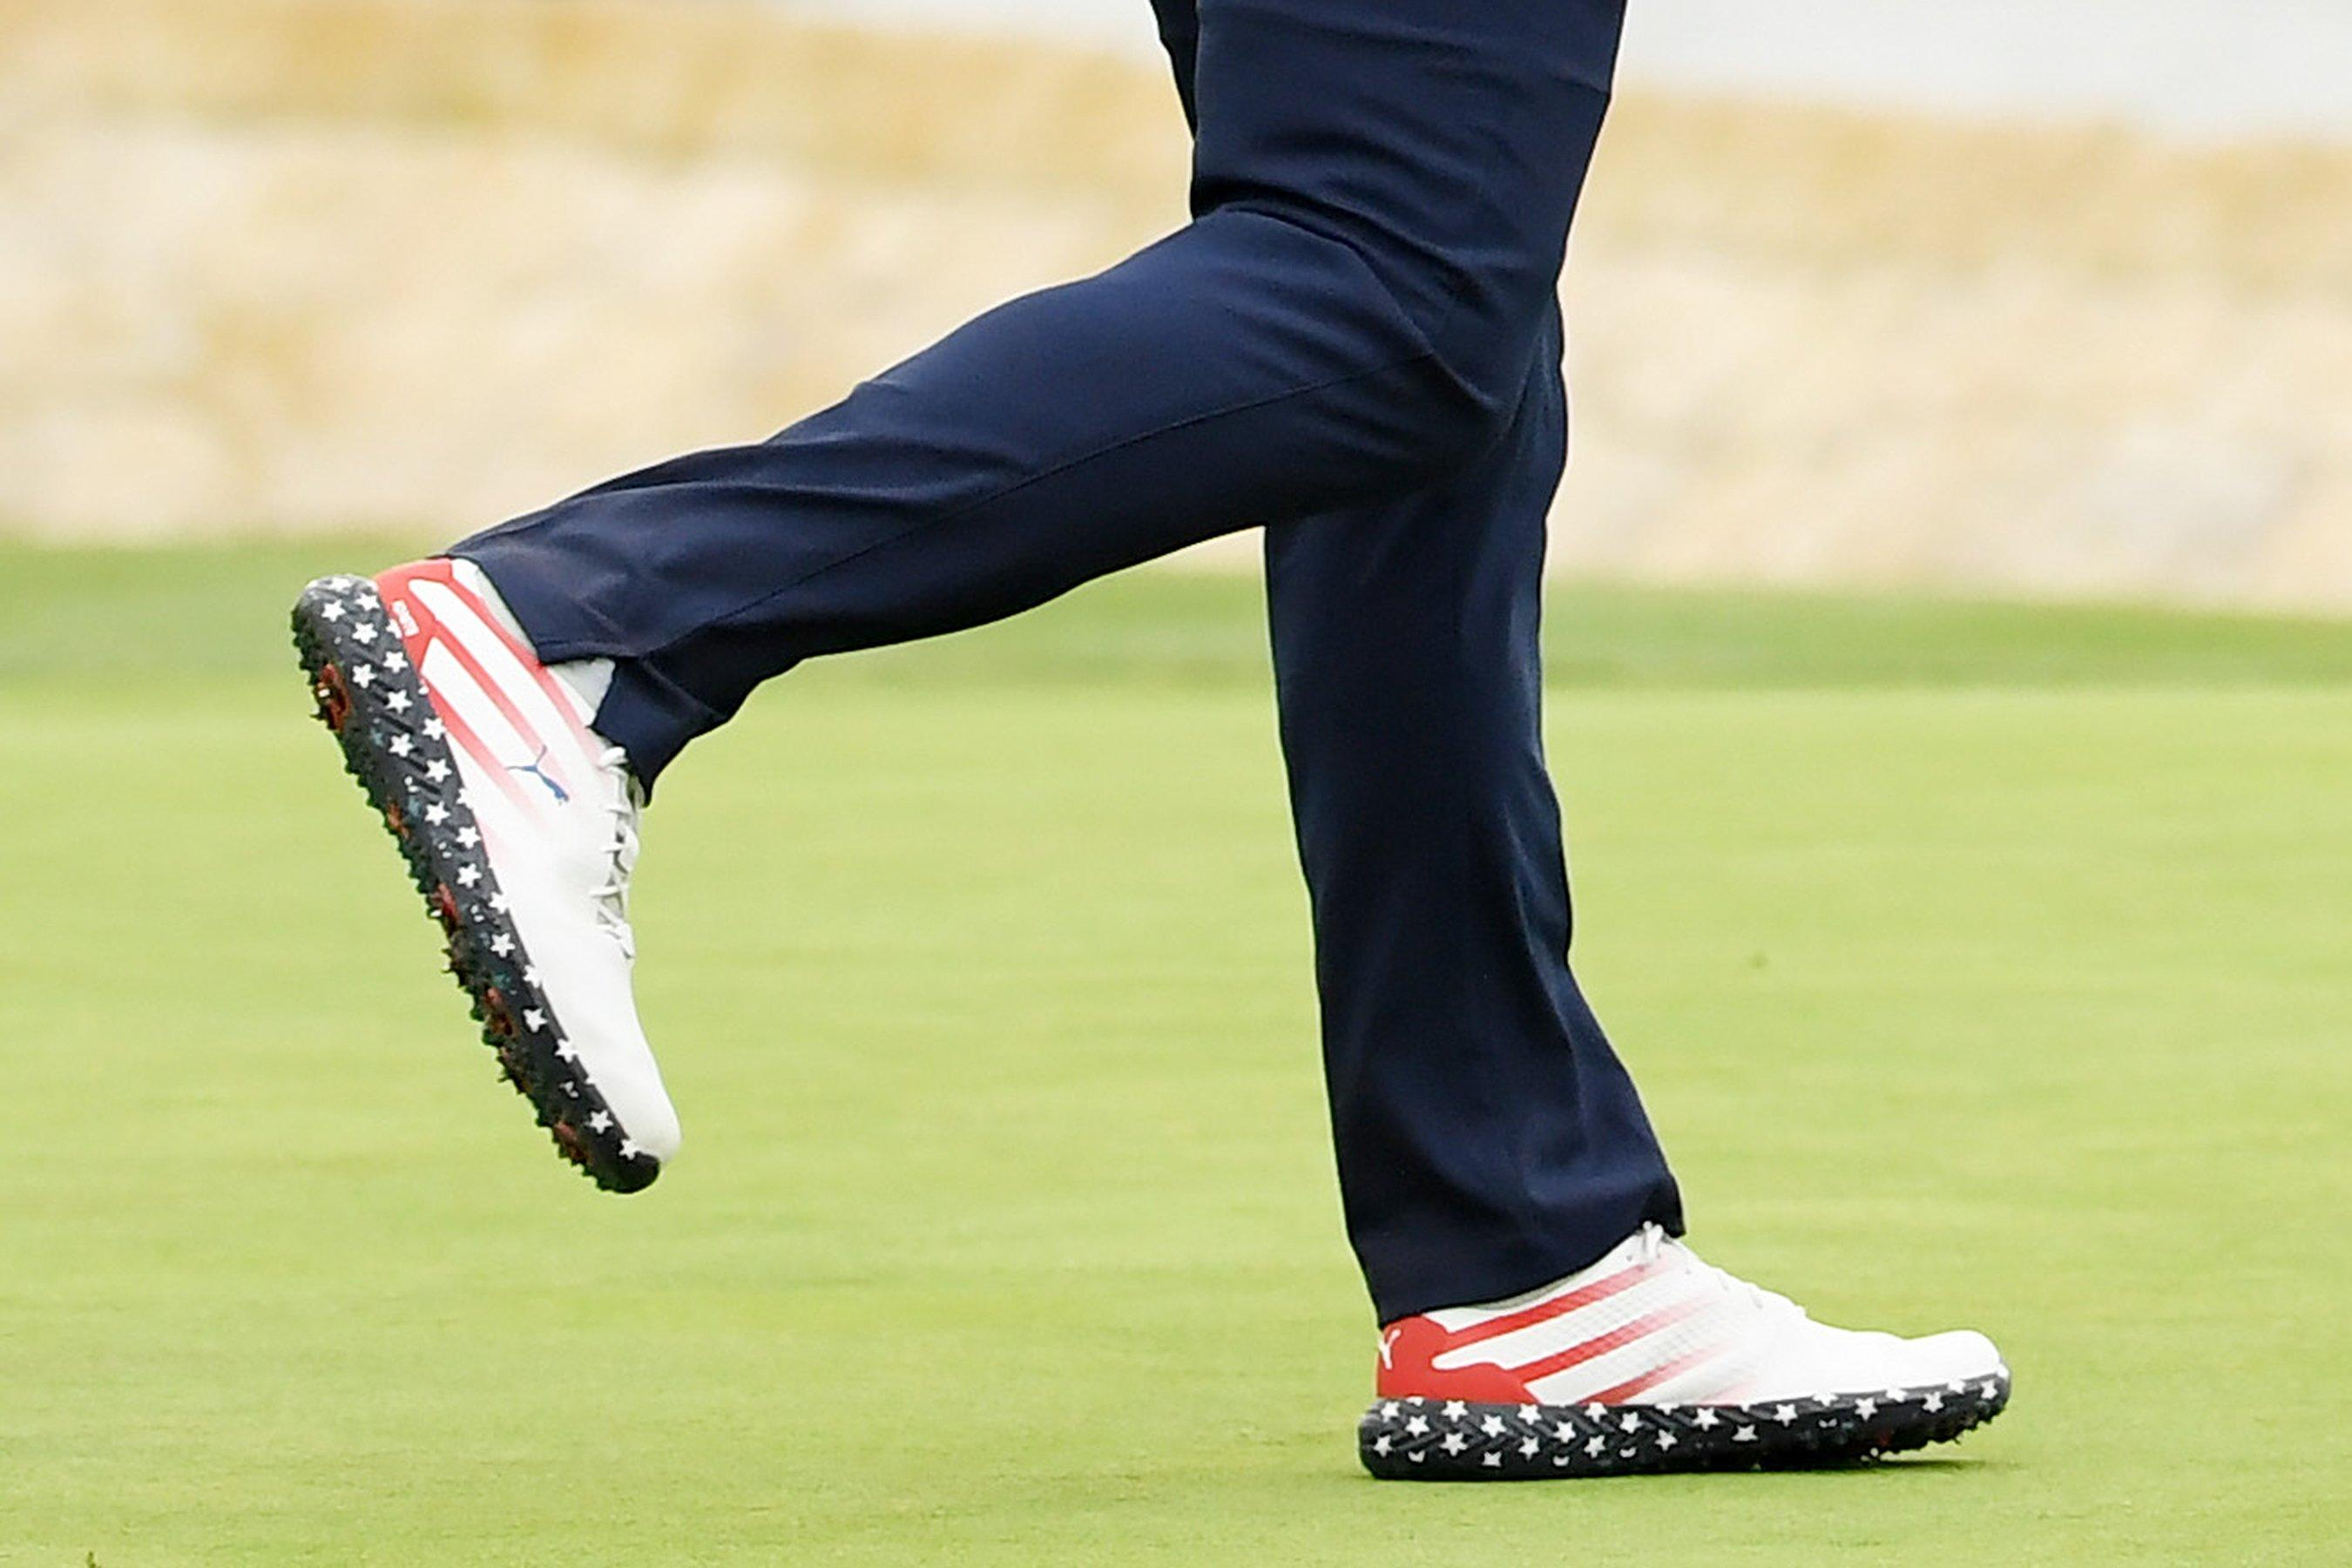 15bebdffe3 U.S. Open Winner Gary Woodland Wore American Flag-Covered Shoes During  Tournament to Honor Troops